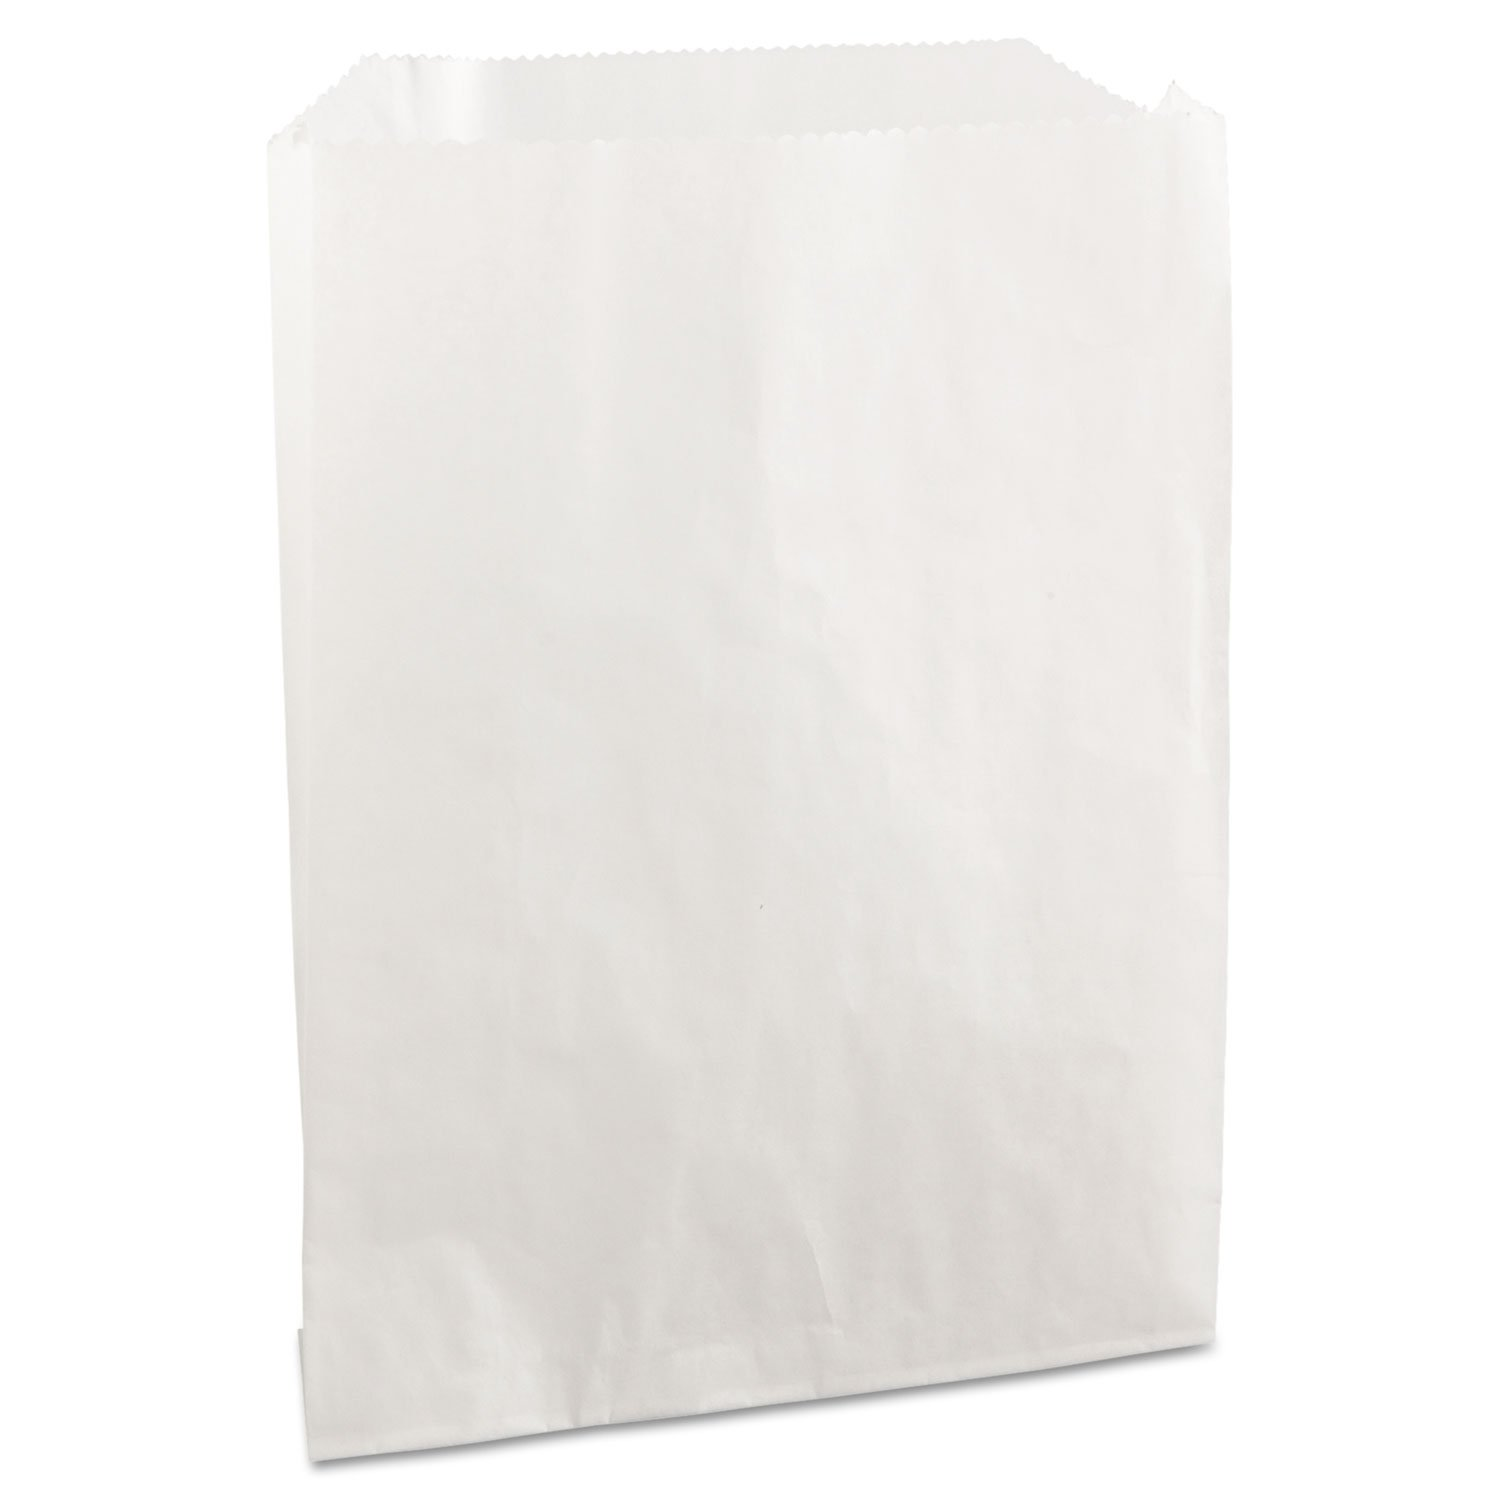 BGC450019 - Pb19 Grease-Resistant Sandwich/Pastry Bags, 6 X 3/4 X 7 1/4, White